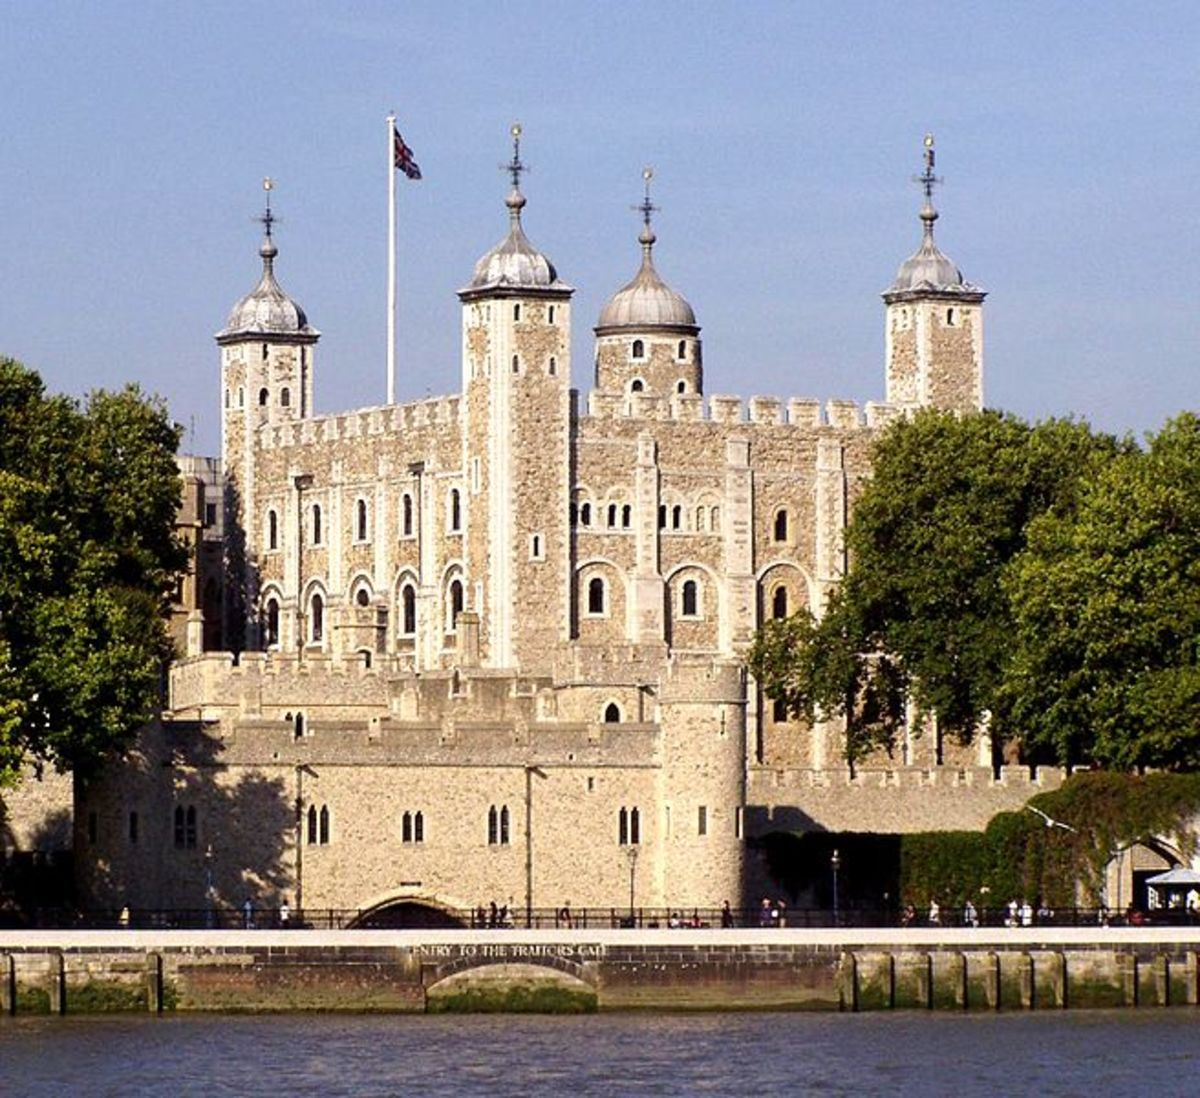 The Tower of London, showing Traitors' Gate. Copyright Viki Male